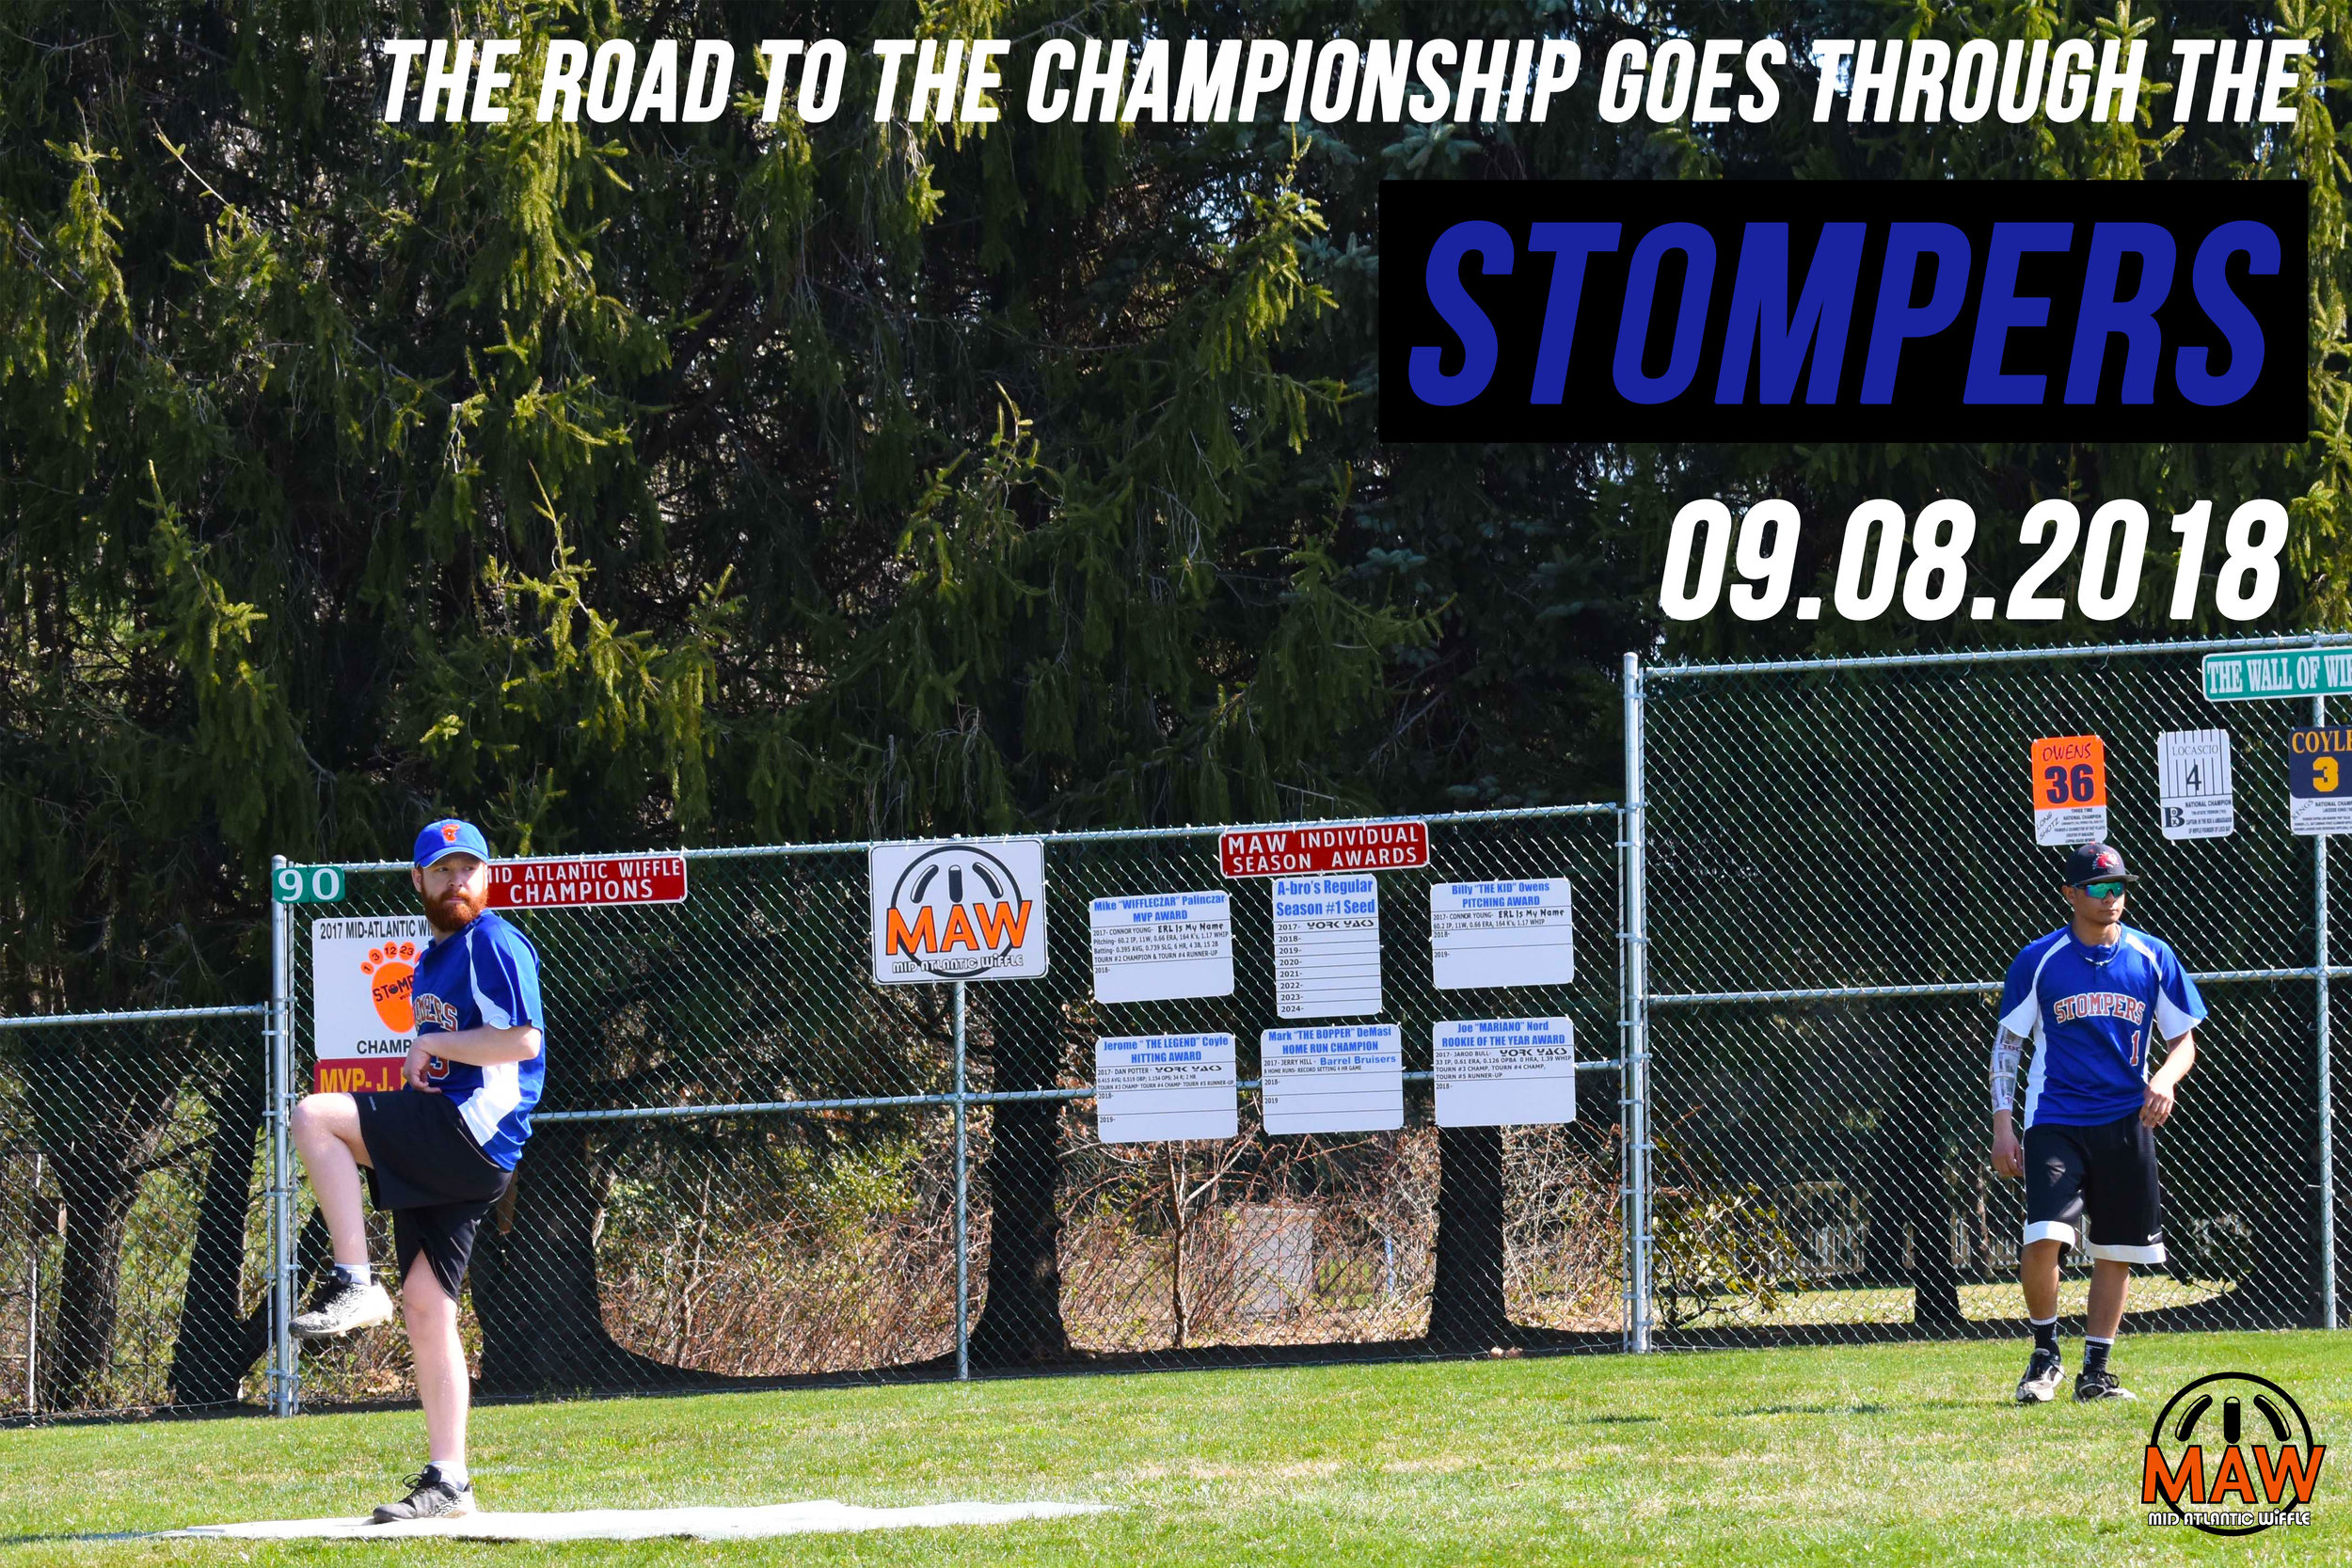 The-Road-to-...-Stompers.jpg